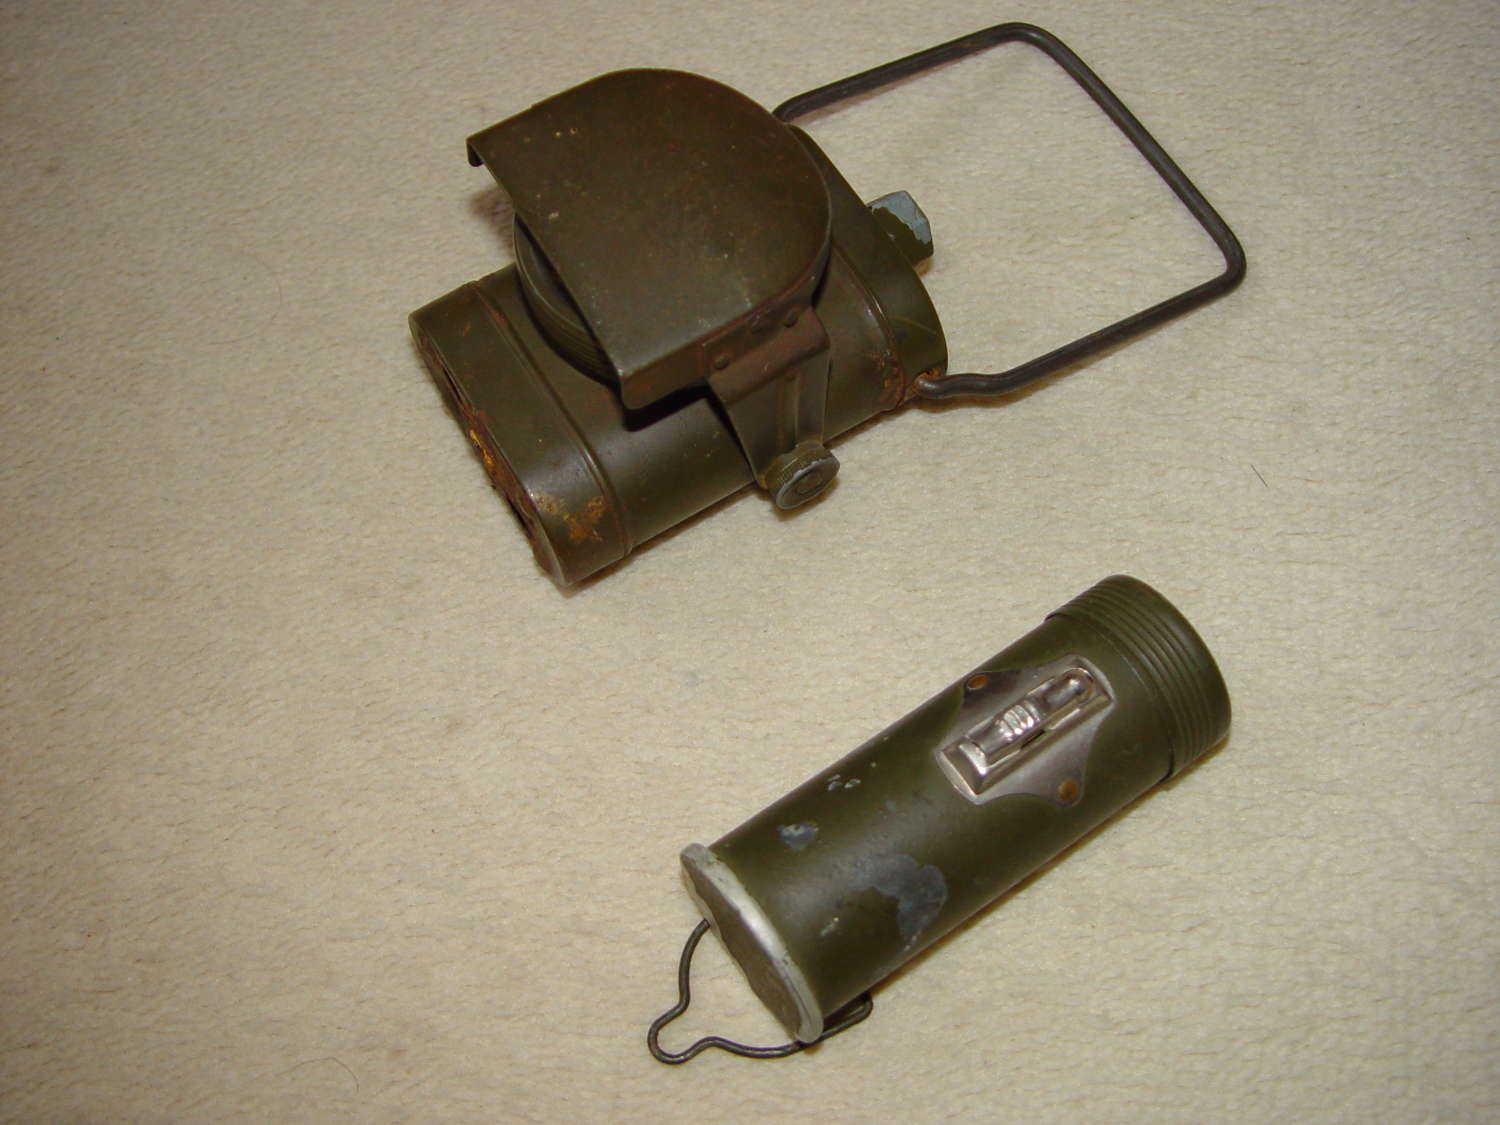 Two British WW2 flashlights